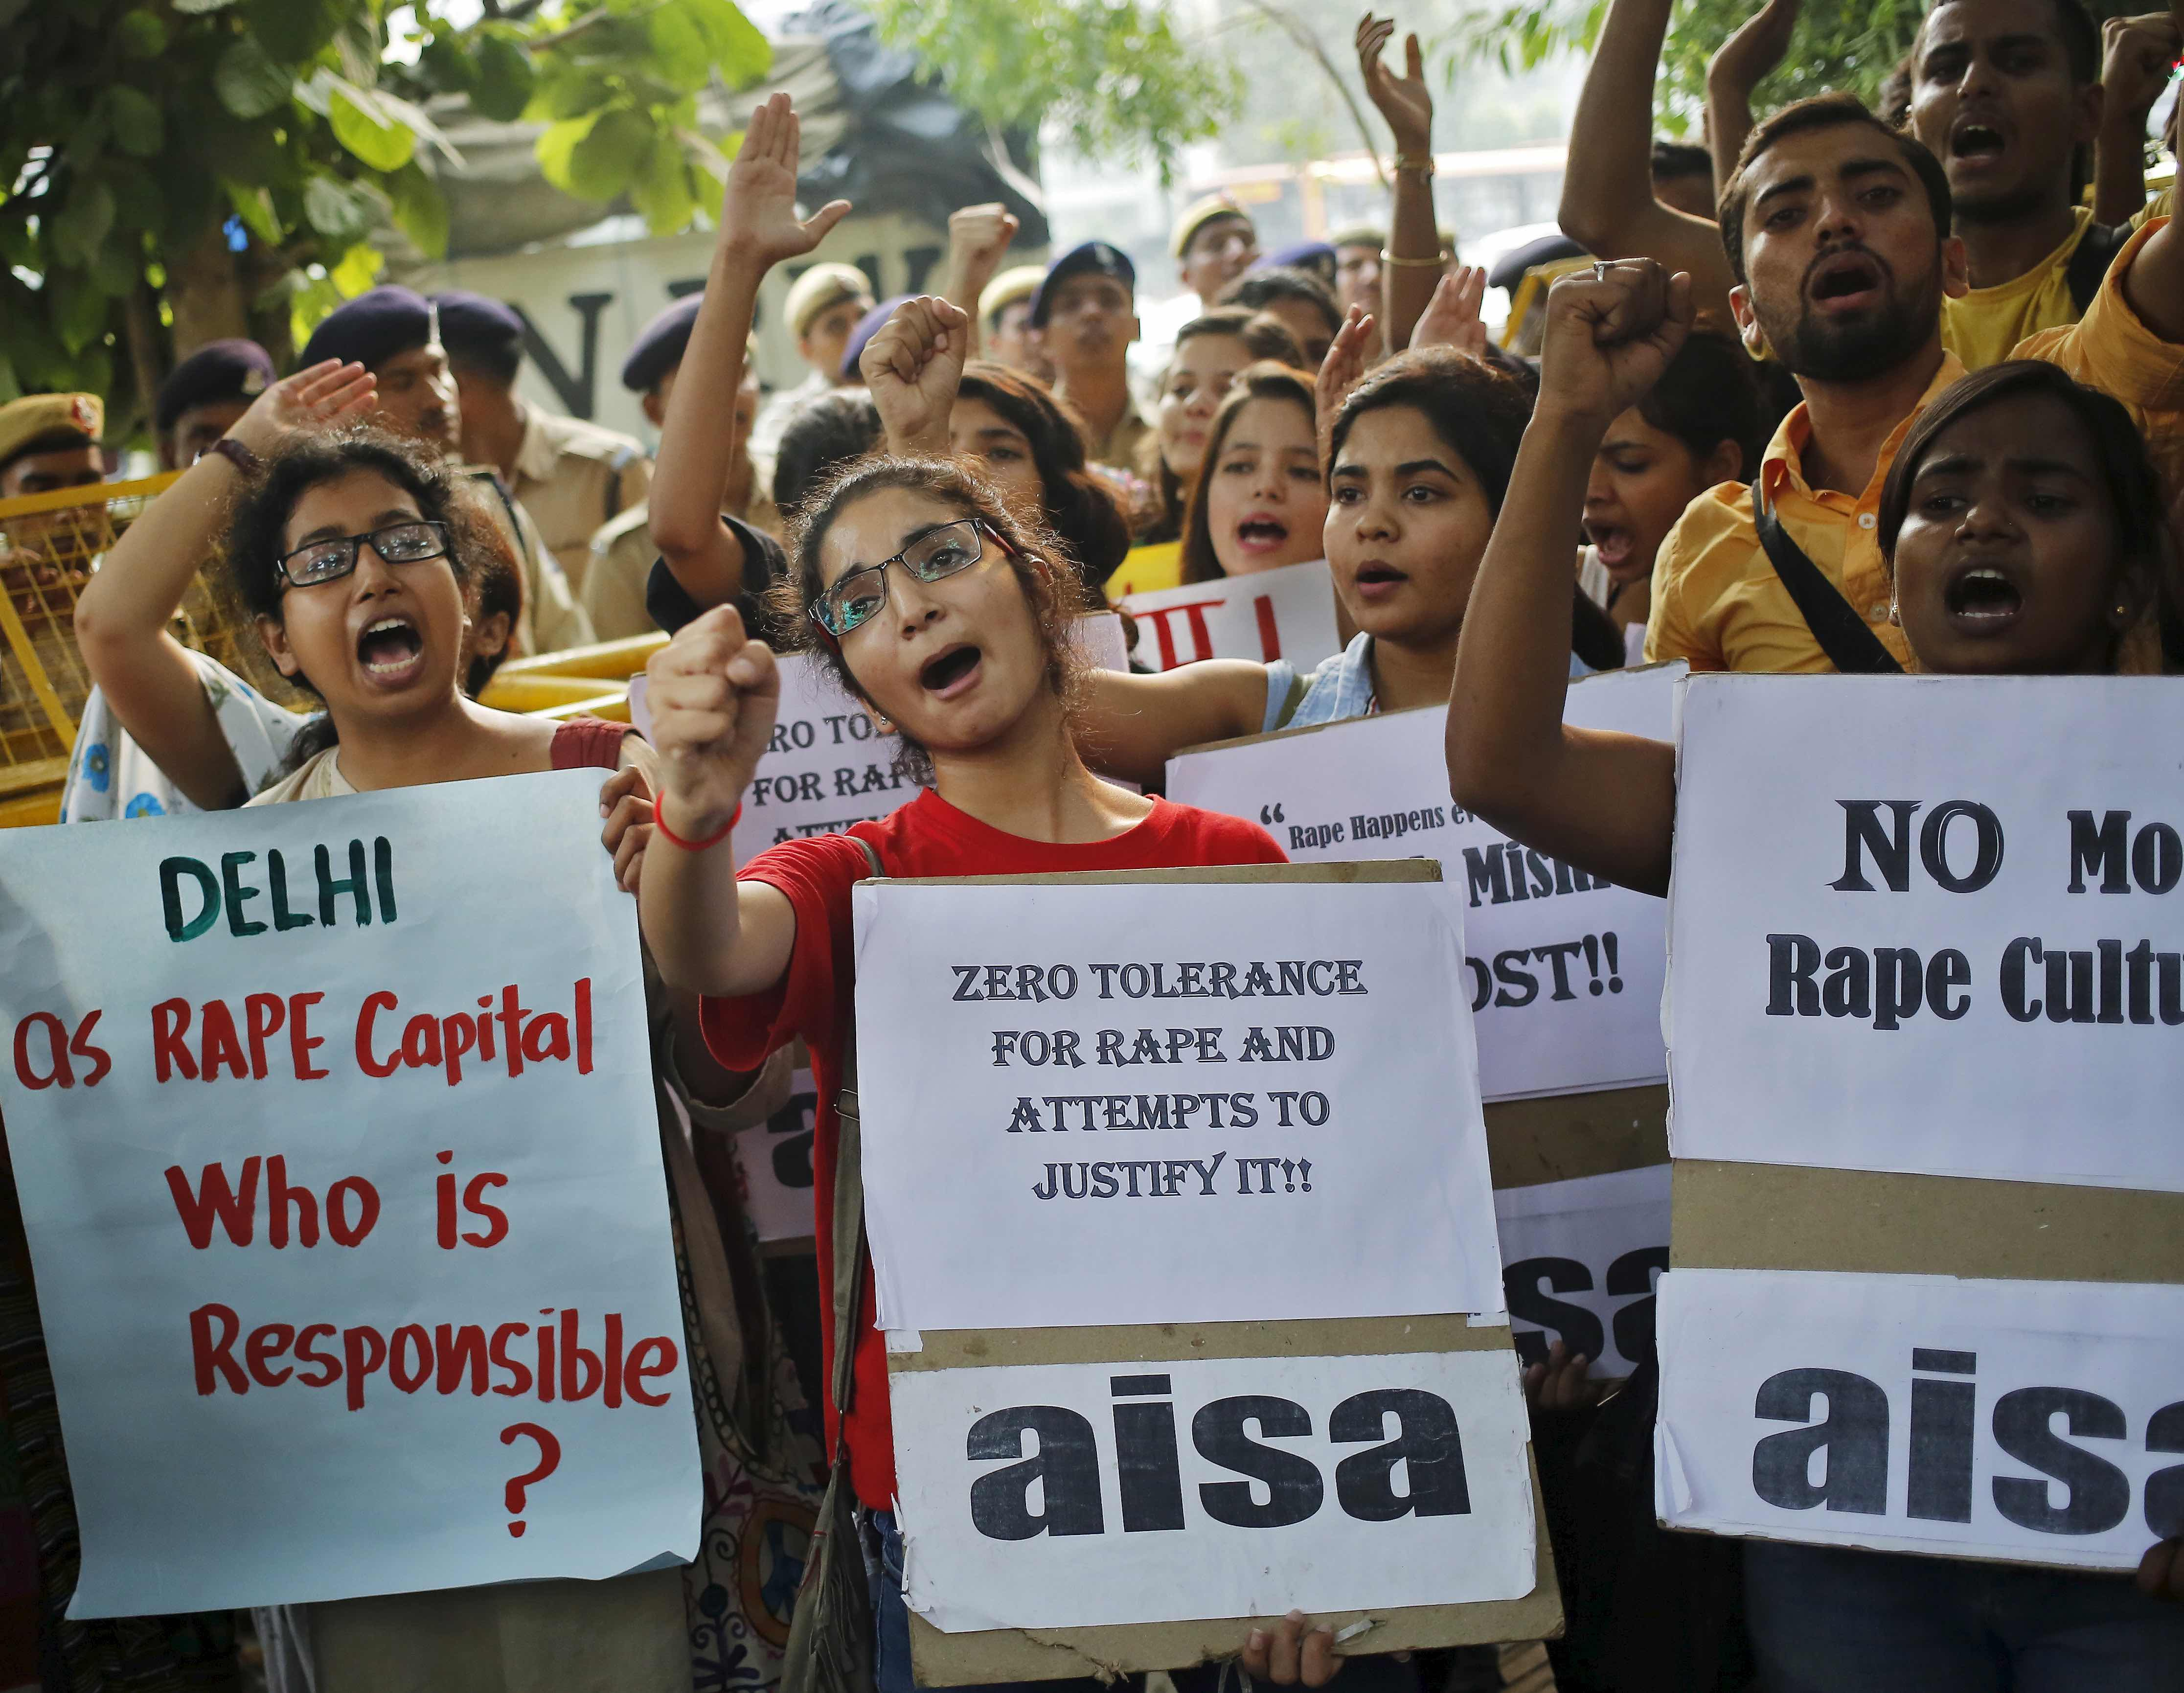 Members of All India Students Association (AISA) shout slogans as they hold placards during a protest outside police headquarters in New Delhi, India, October 18, 2015. Dozens of AISA members on Sunday held a protest against the recent rapes in the capital, the demonstrators said. REUTERS/Anindito Mukherjee - RTS4YAL